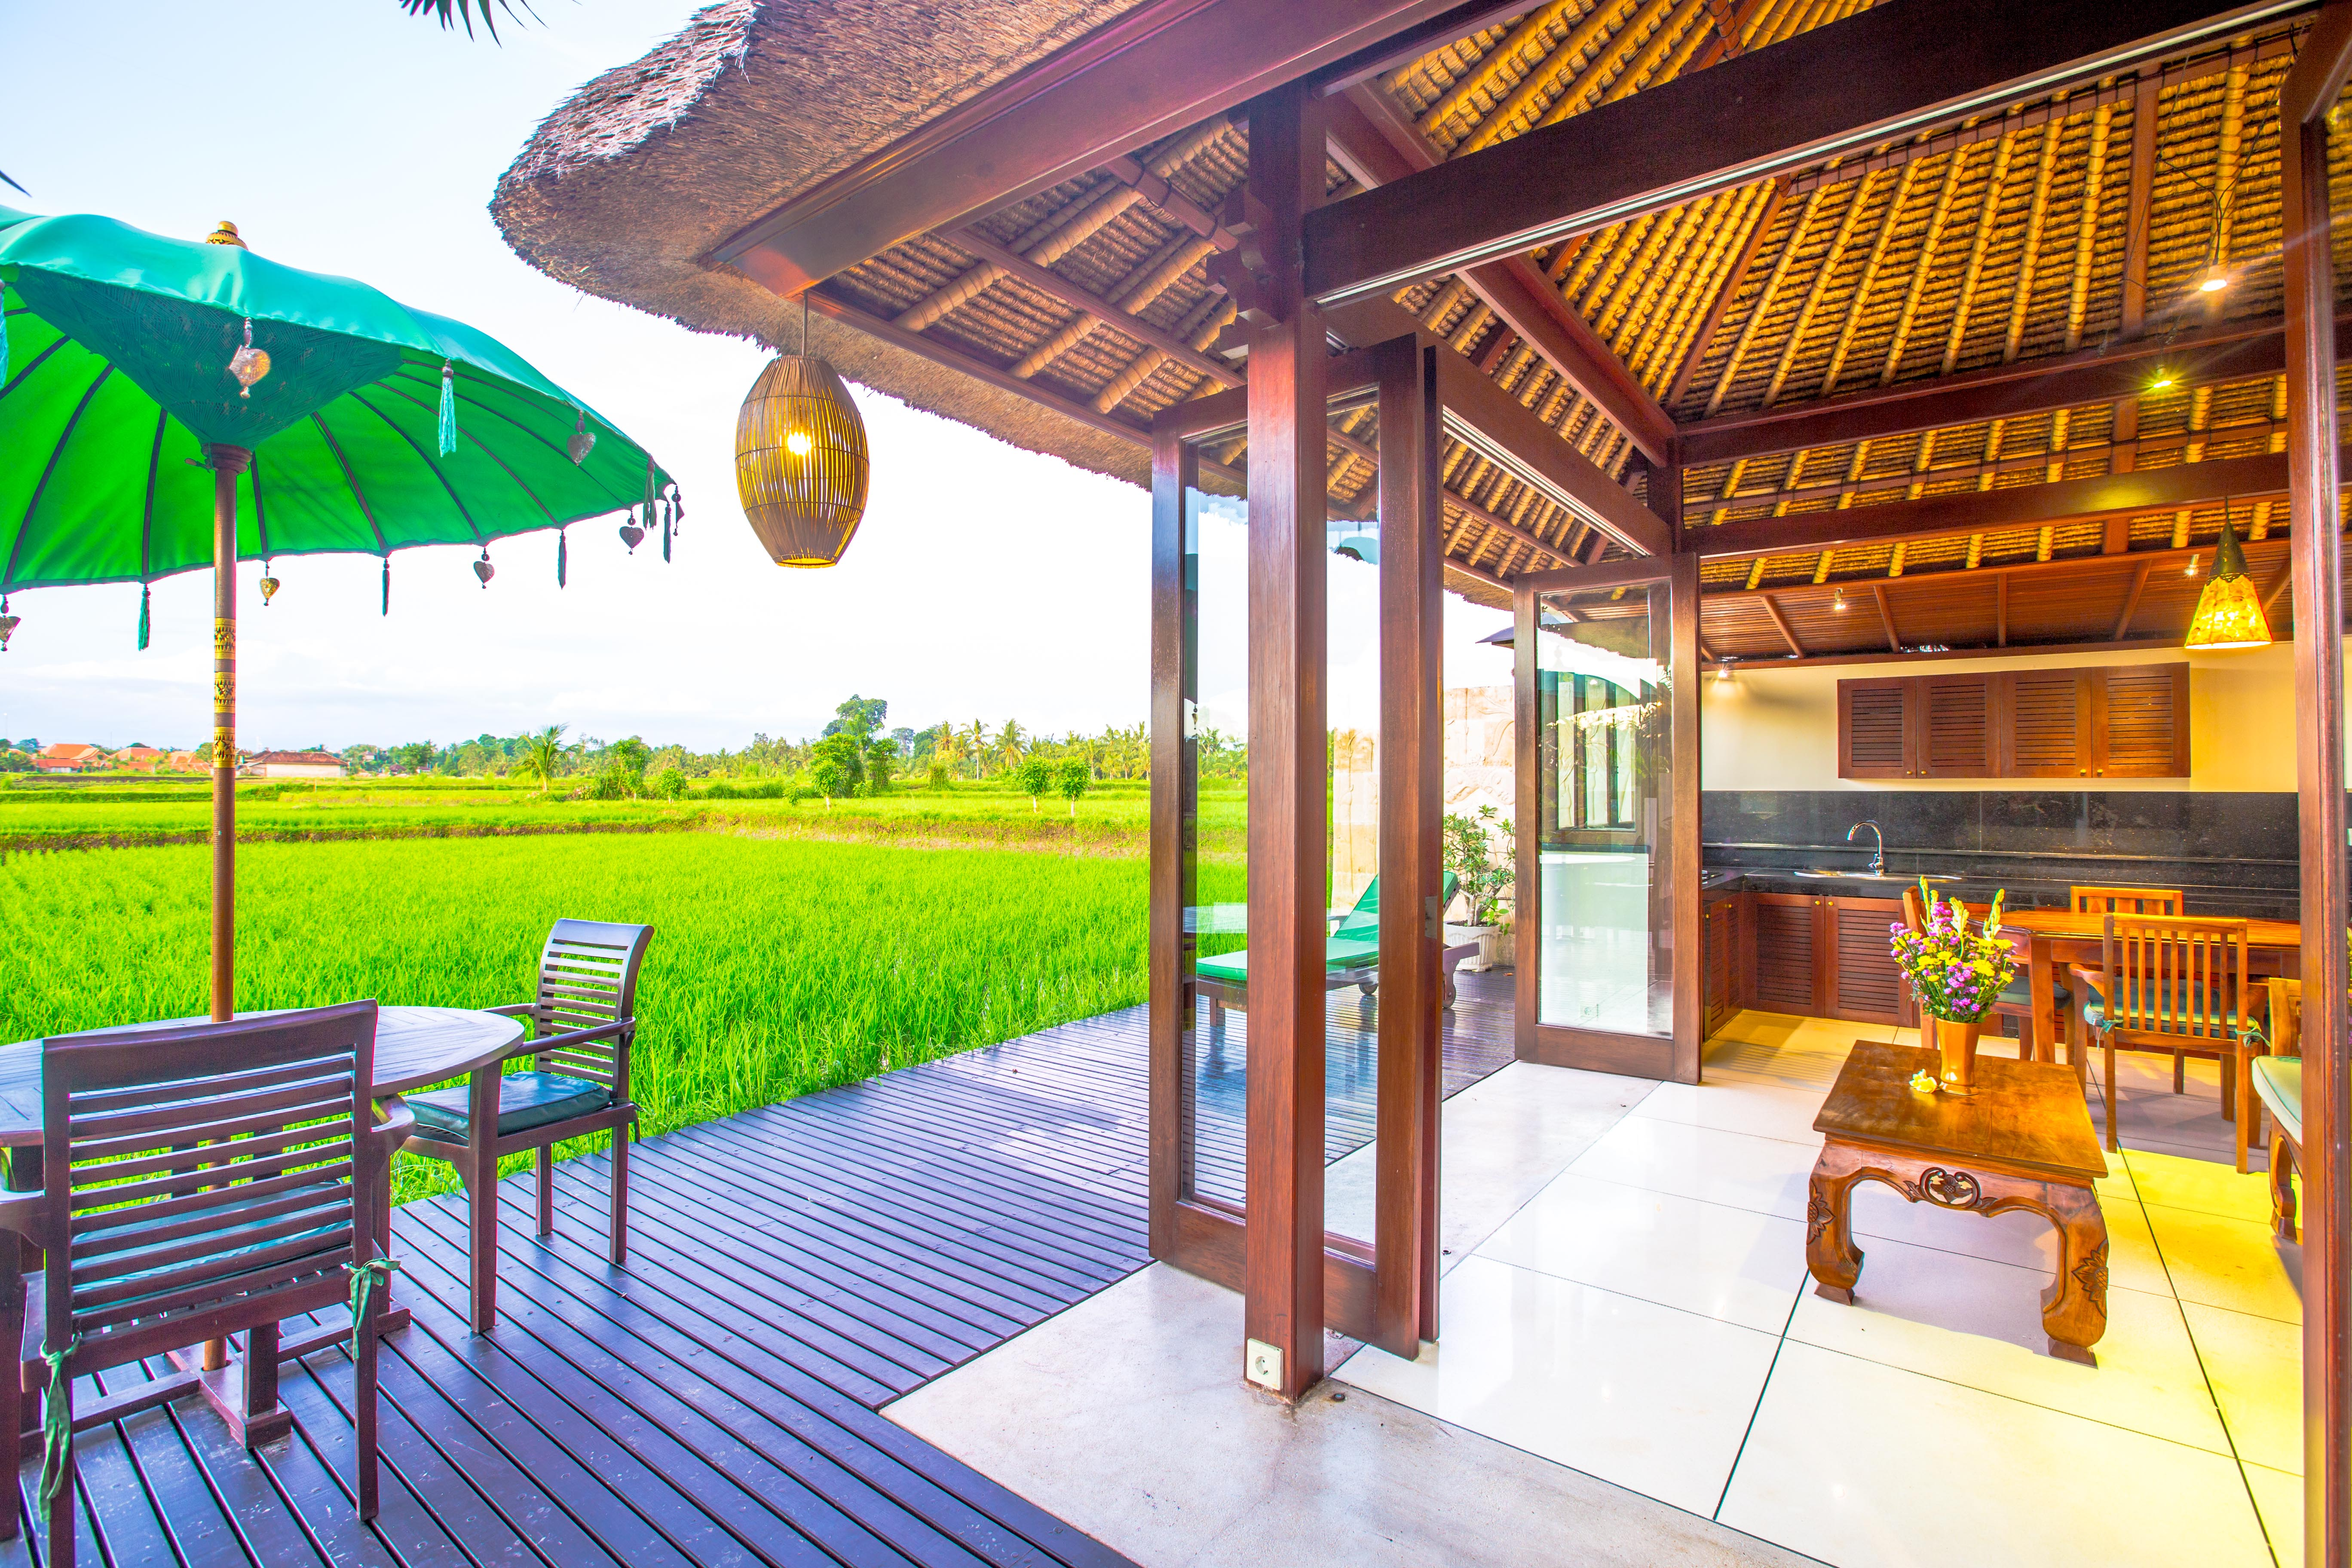 Welcome to Bali Harmony Villa on double door designs for houses, cathedral ceiling designs for houses, car porches for houses, entrance door designs for houses, wooden door designs for houses, malaysian houses, portico designs for houses, balcony designs for houses, kitchen designs for houses, car portico designs, minecraft designs for houses, single door designs for houses, front deck designs for houses,